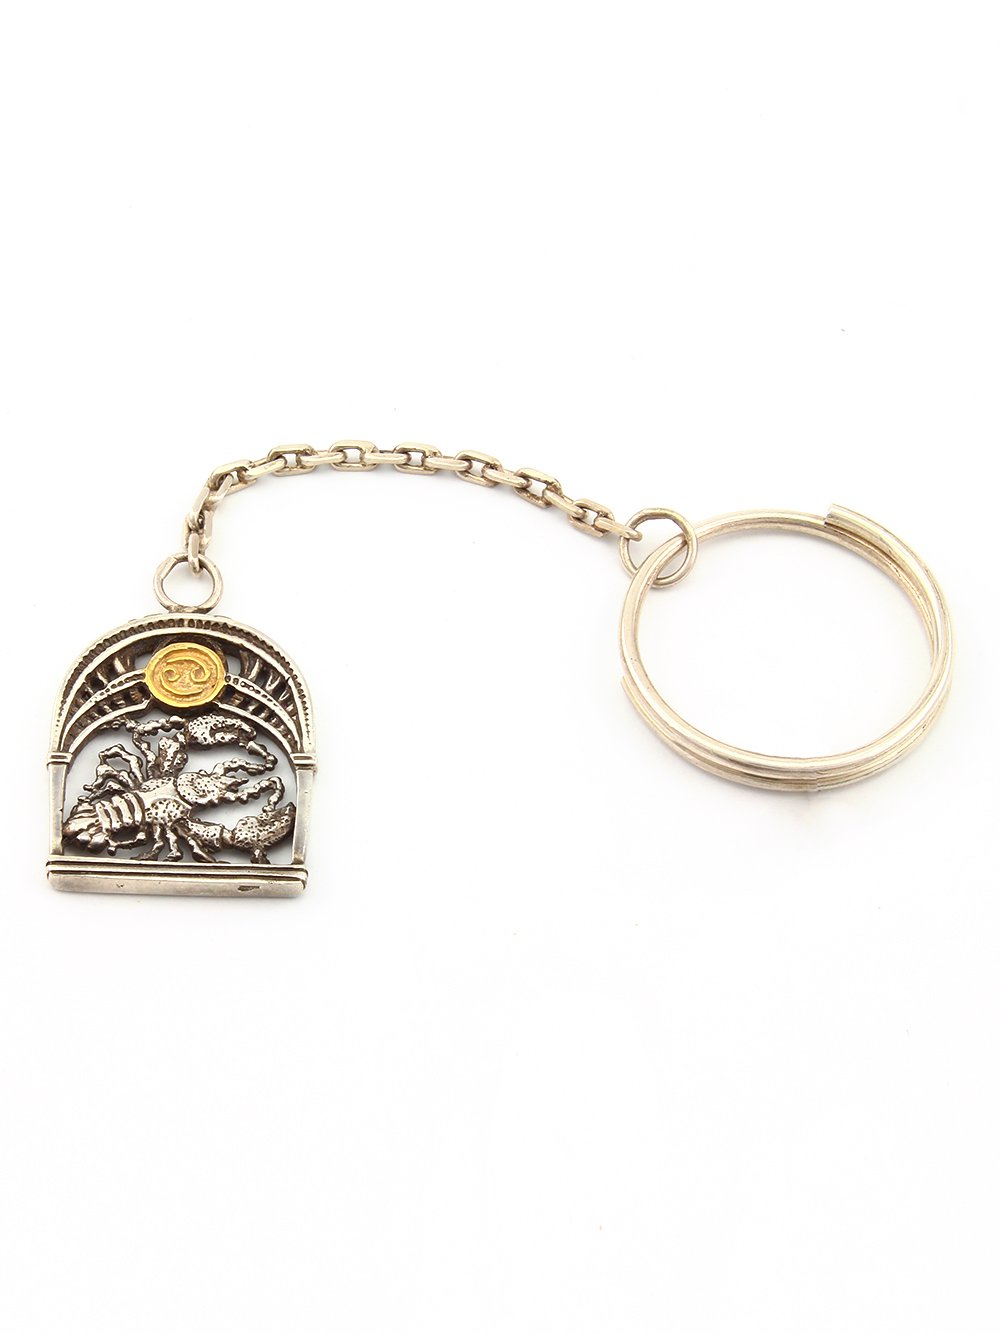 "Silver Key chain with Signs of the Zodiac ""Cancer"""